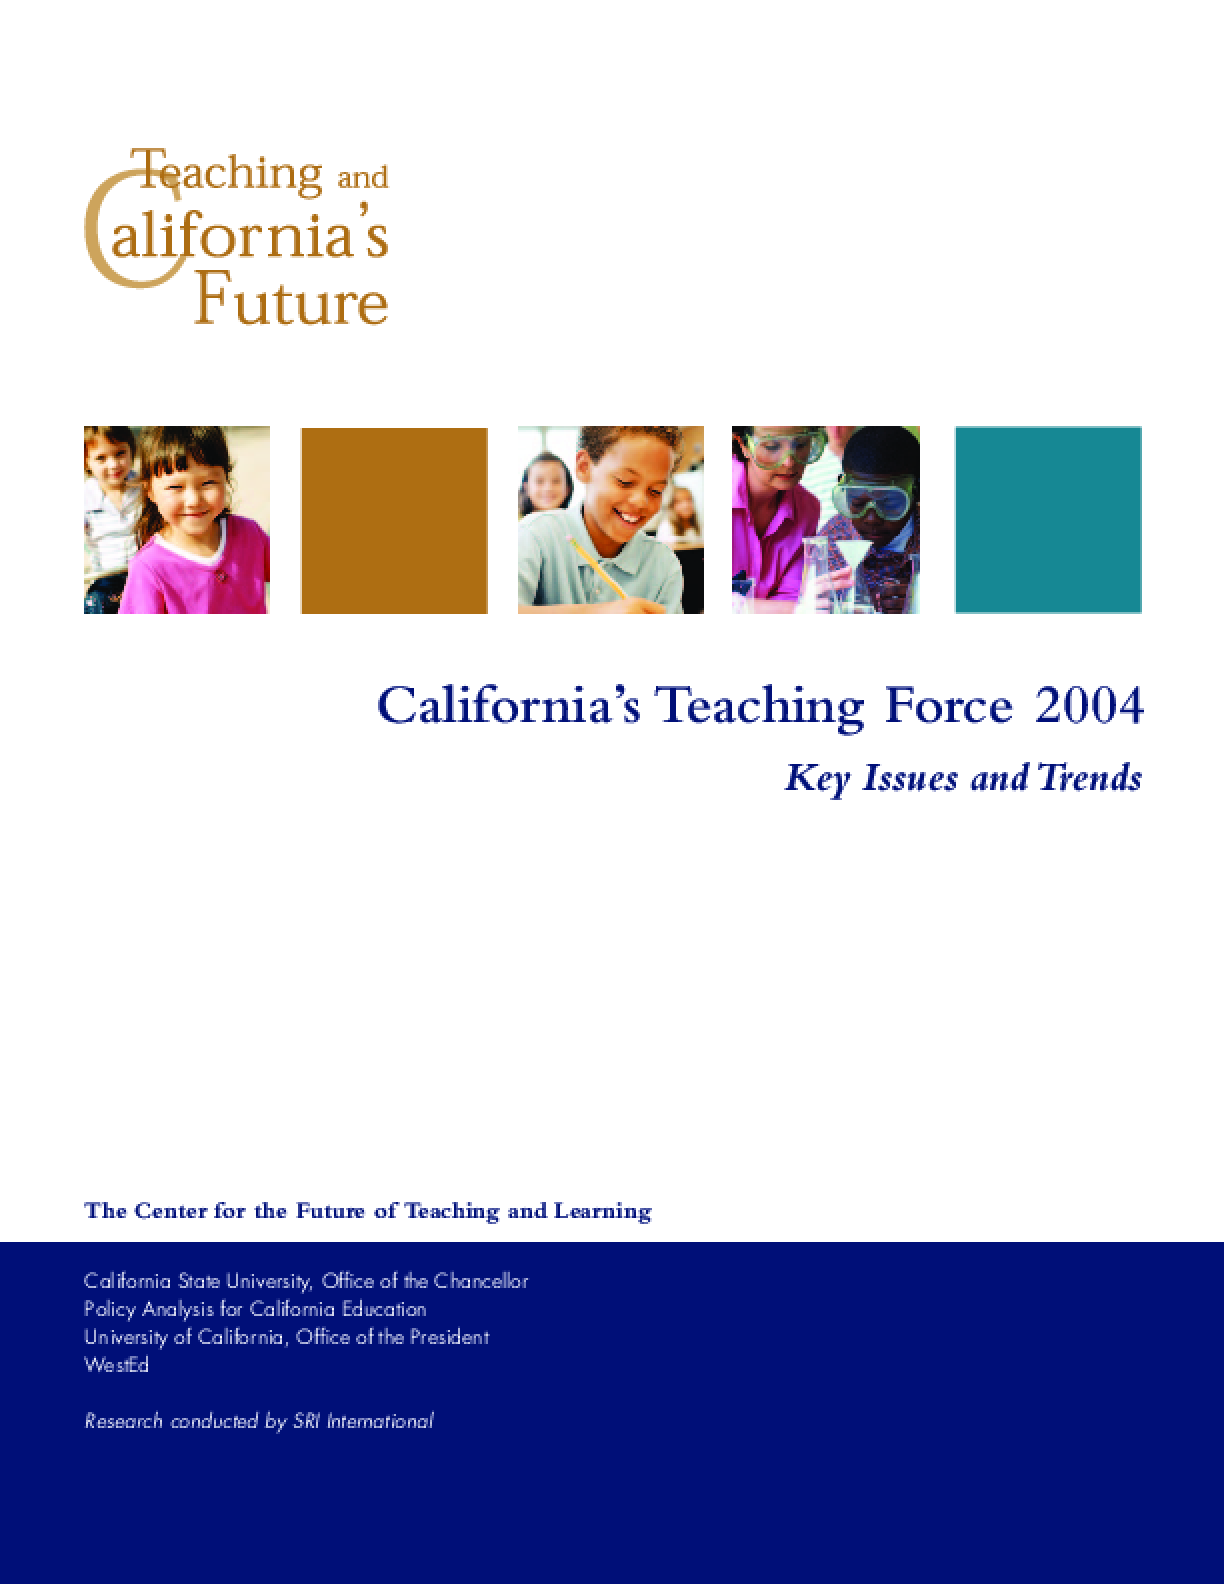 California's Teaching Force 2004: Key Issues and Trends (Summary)